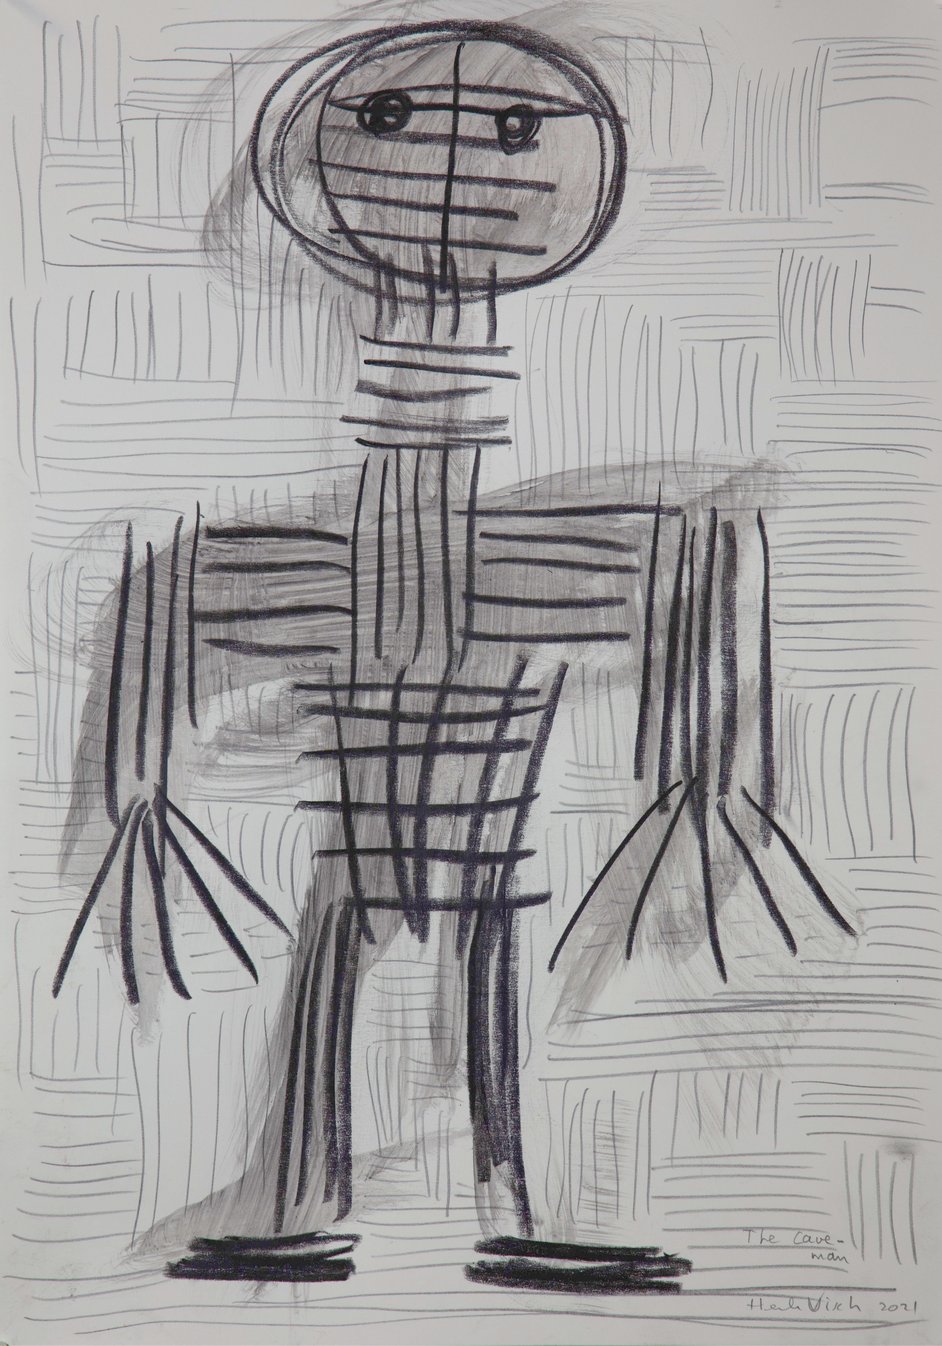 HENK VISCH The cave man, 2021 water color, ink and pencil on paper 42 x 29,7 cm